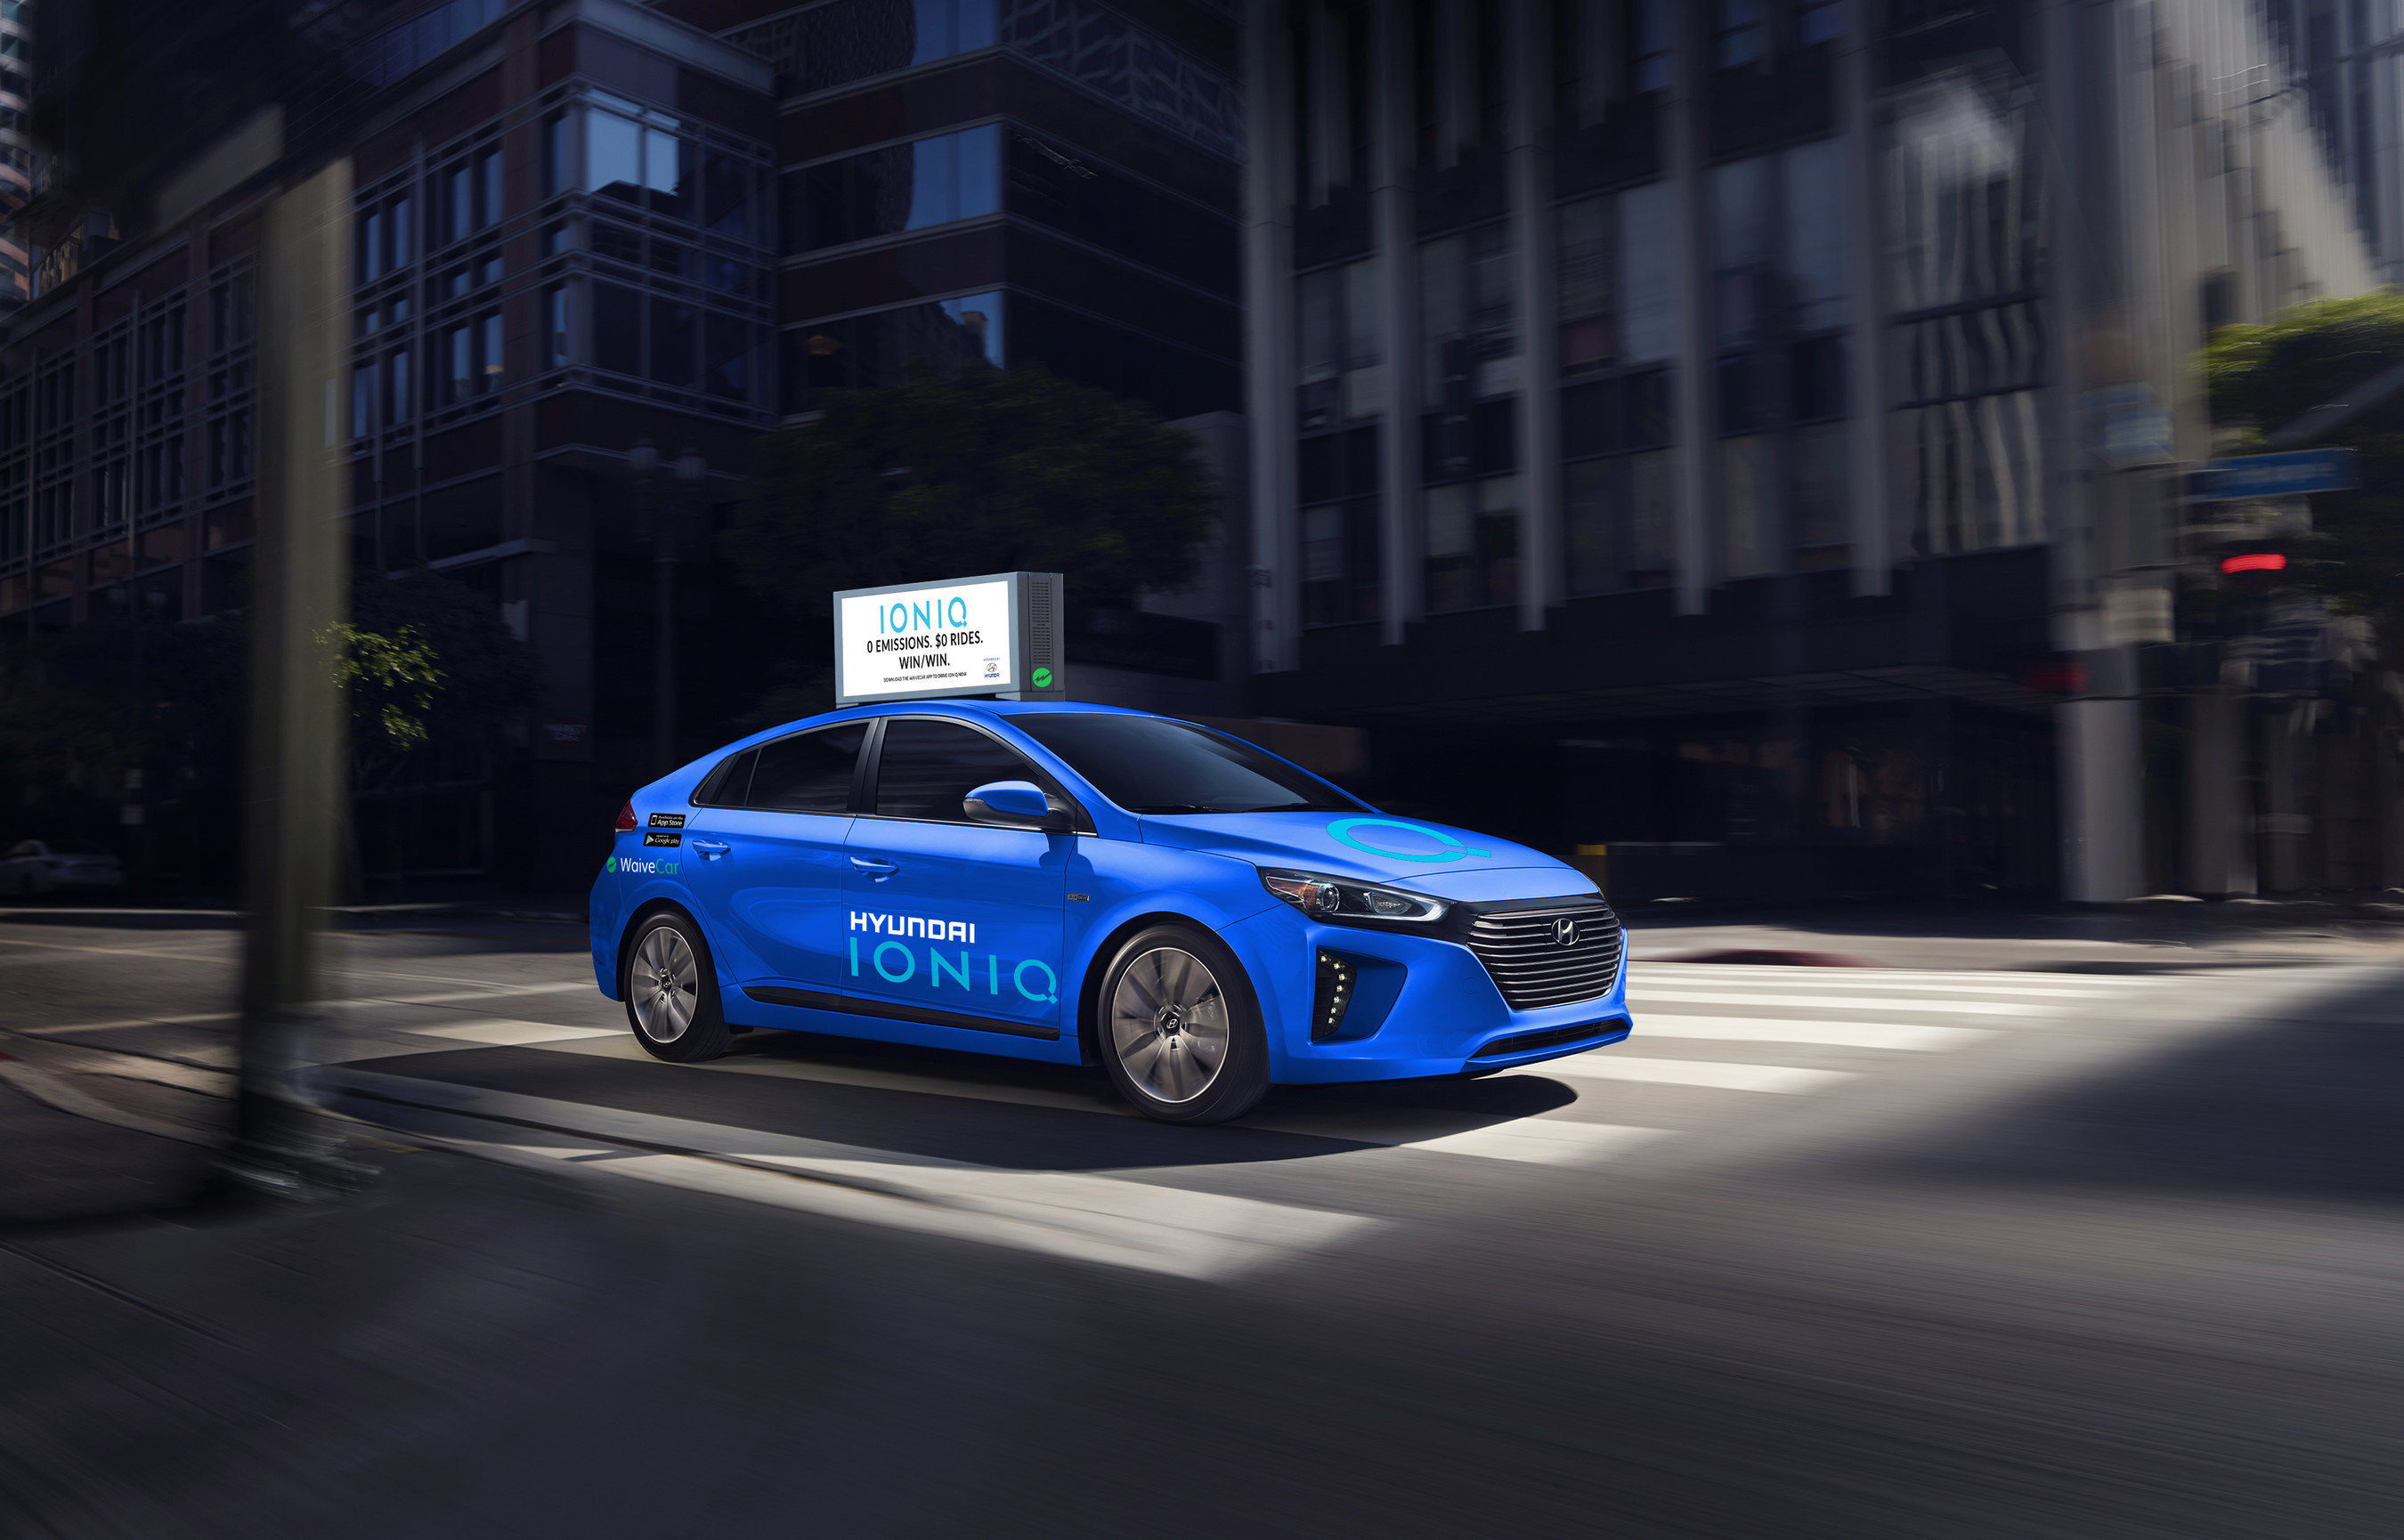 Los Angeles, Nov. 16, 2016 - Hyundai Motor and WaiveCar, the world's first all-electric car-sharing program that runs on advertising dollars, today announced a partnership that will expose millions of shoppers to the all-new Hyundai IONIQ electric compact car for free.